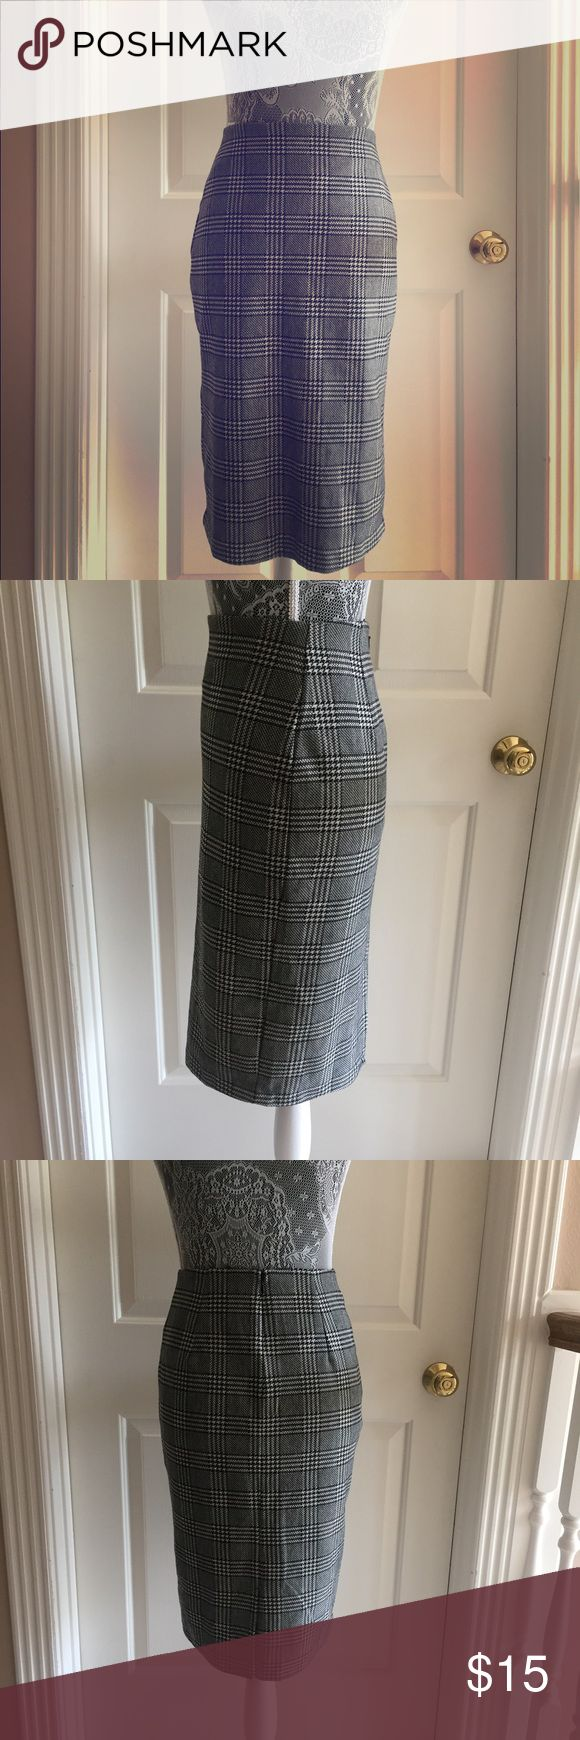 Mango houndstooth skirt Purchased in Spain. New without tags. Back zipper closure. Lined and has some stretch to it Mango Skirts Midi